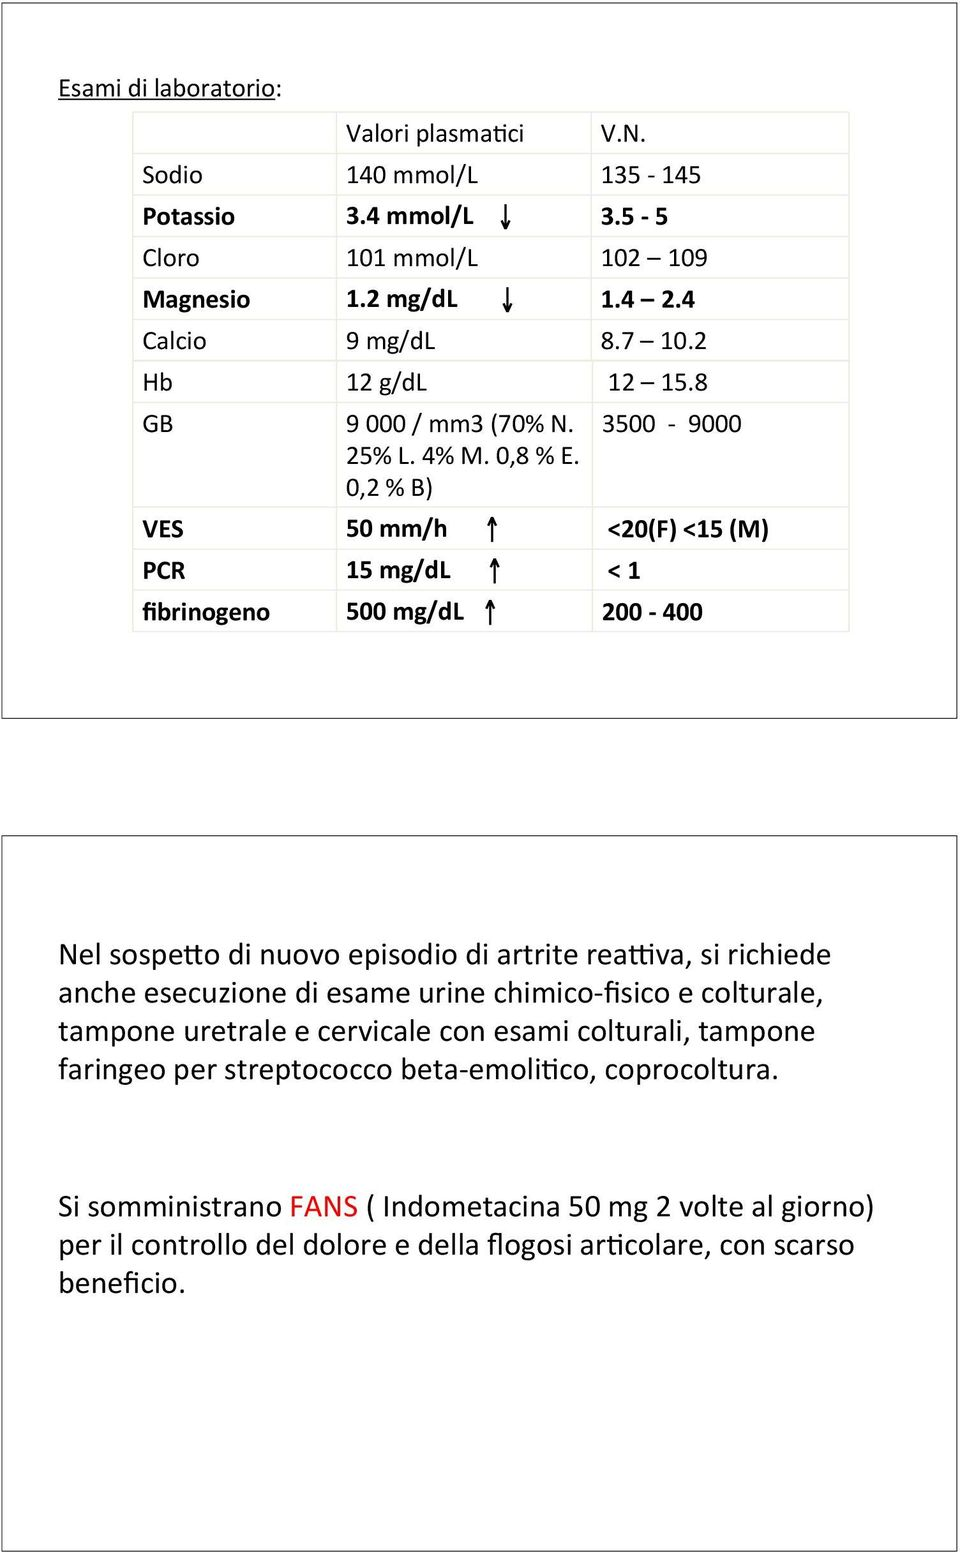 0,2 % B) 3500-9000 VES 50 mm/h <20(F) <15 (M) PCR 15 mg/dl < 1 fibrinogeno 500 mg/dl 200-400 Nel sospewo di nuovo episodio di artrite realva, si richiede anche esecuzione di